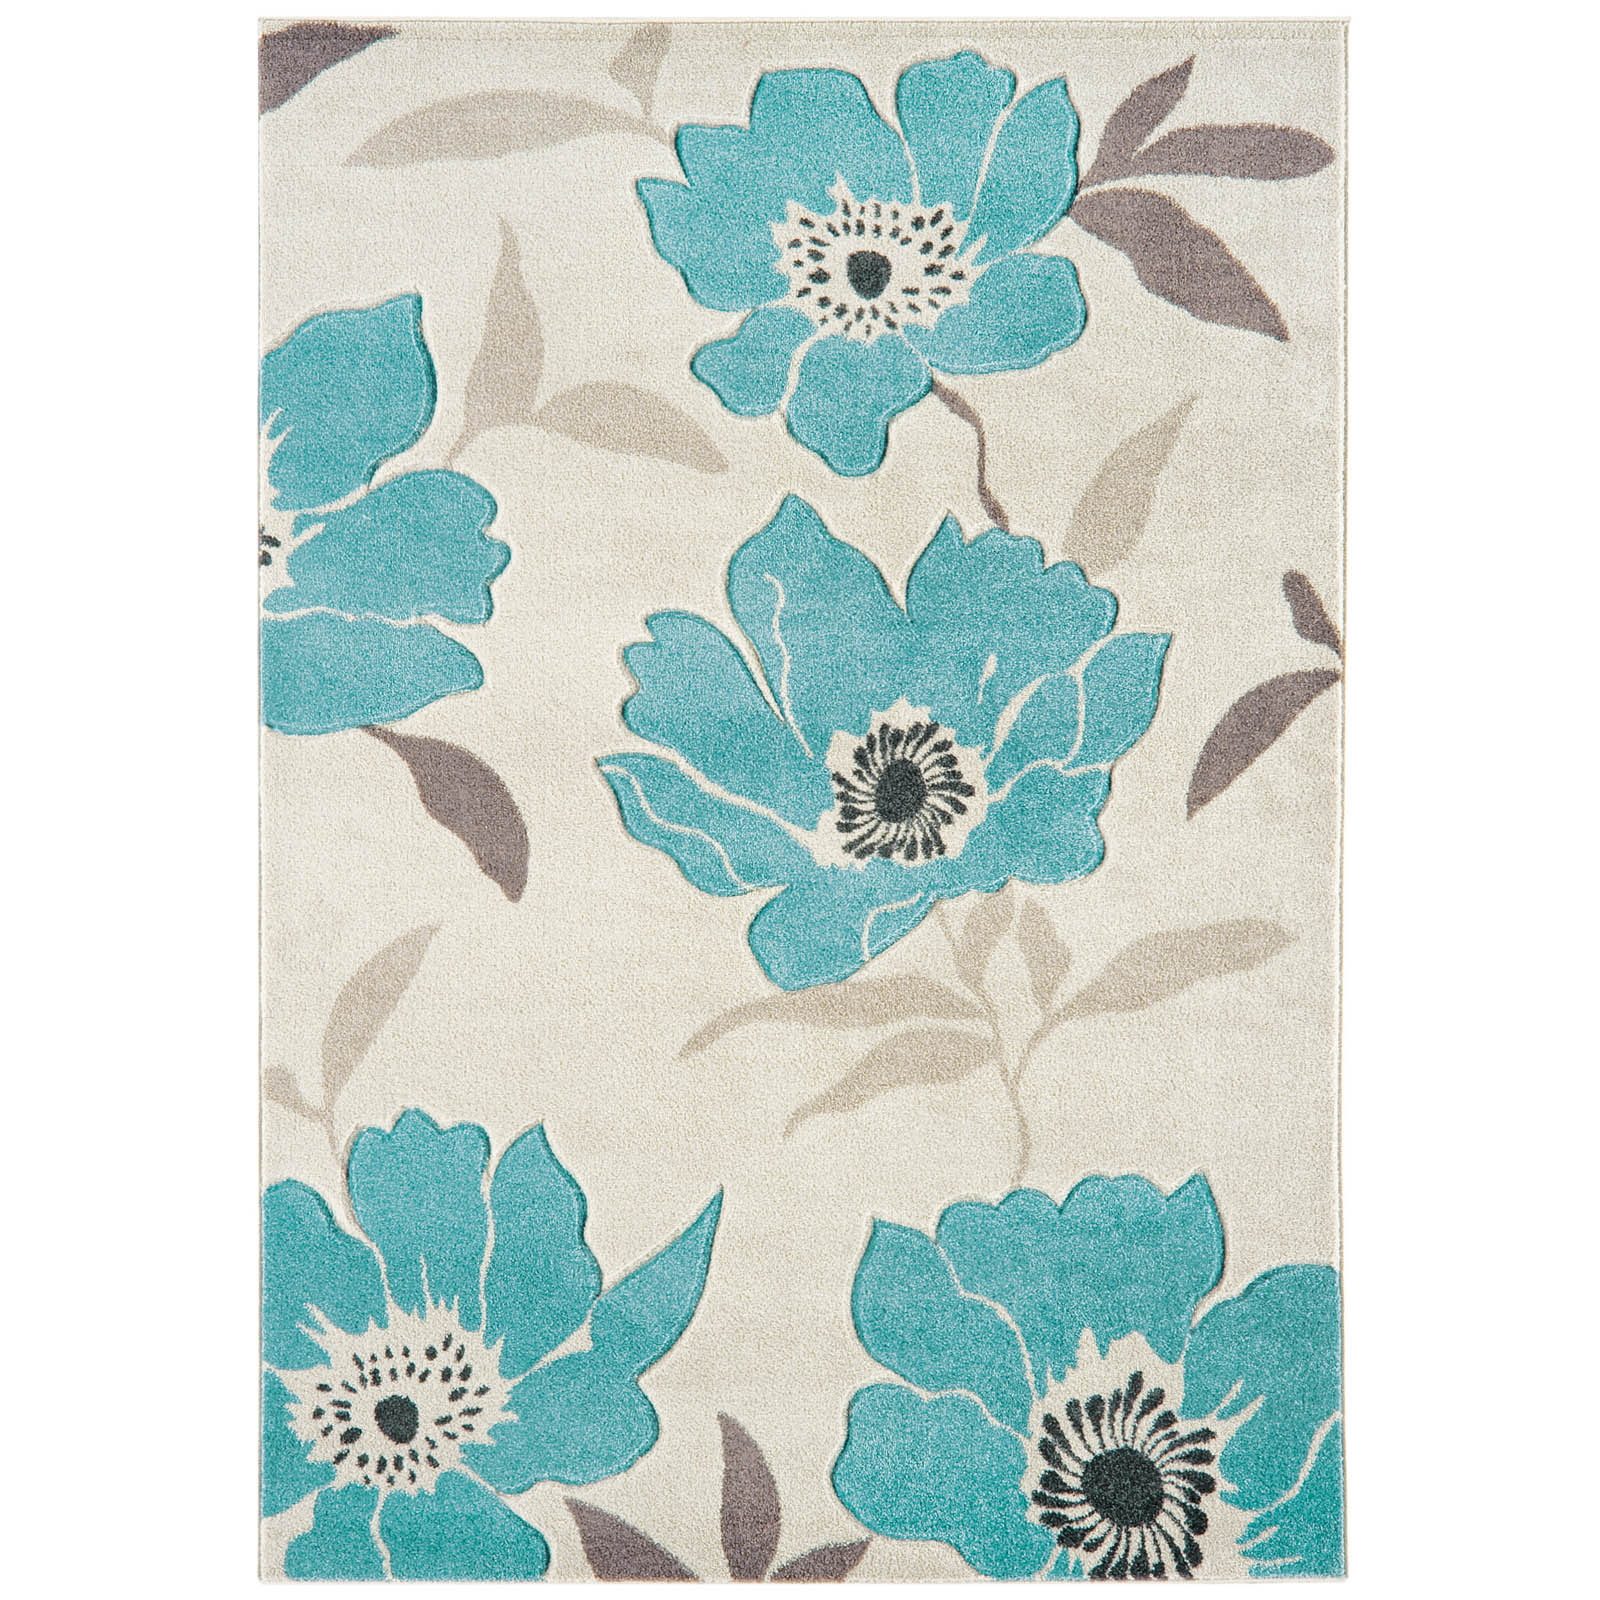 Vogue Poppies Rugs VG01 in Blue